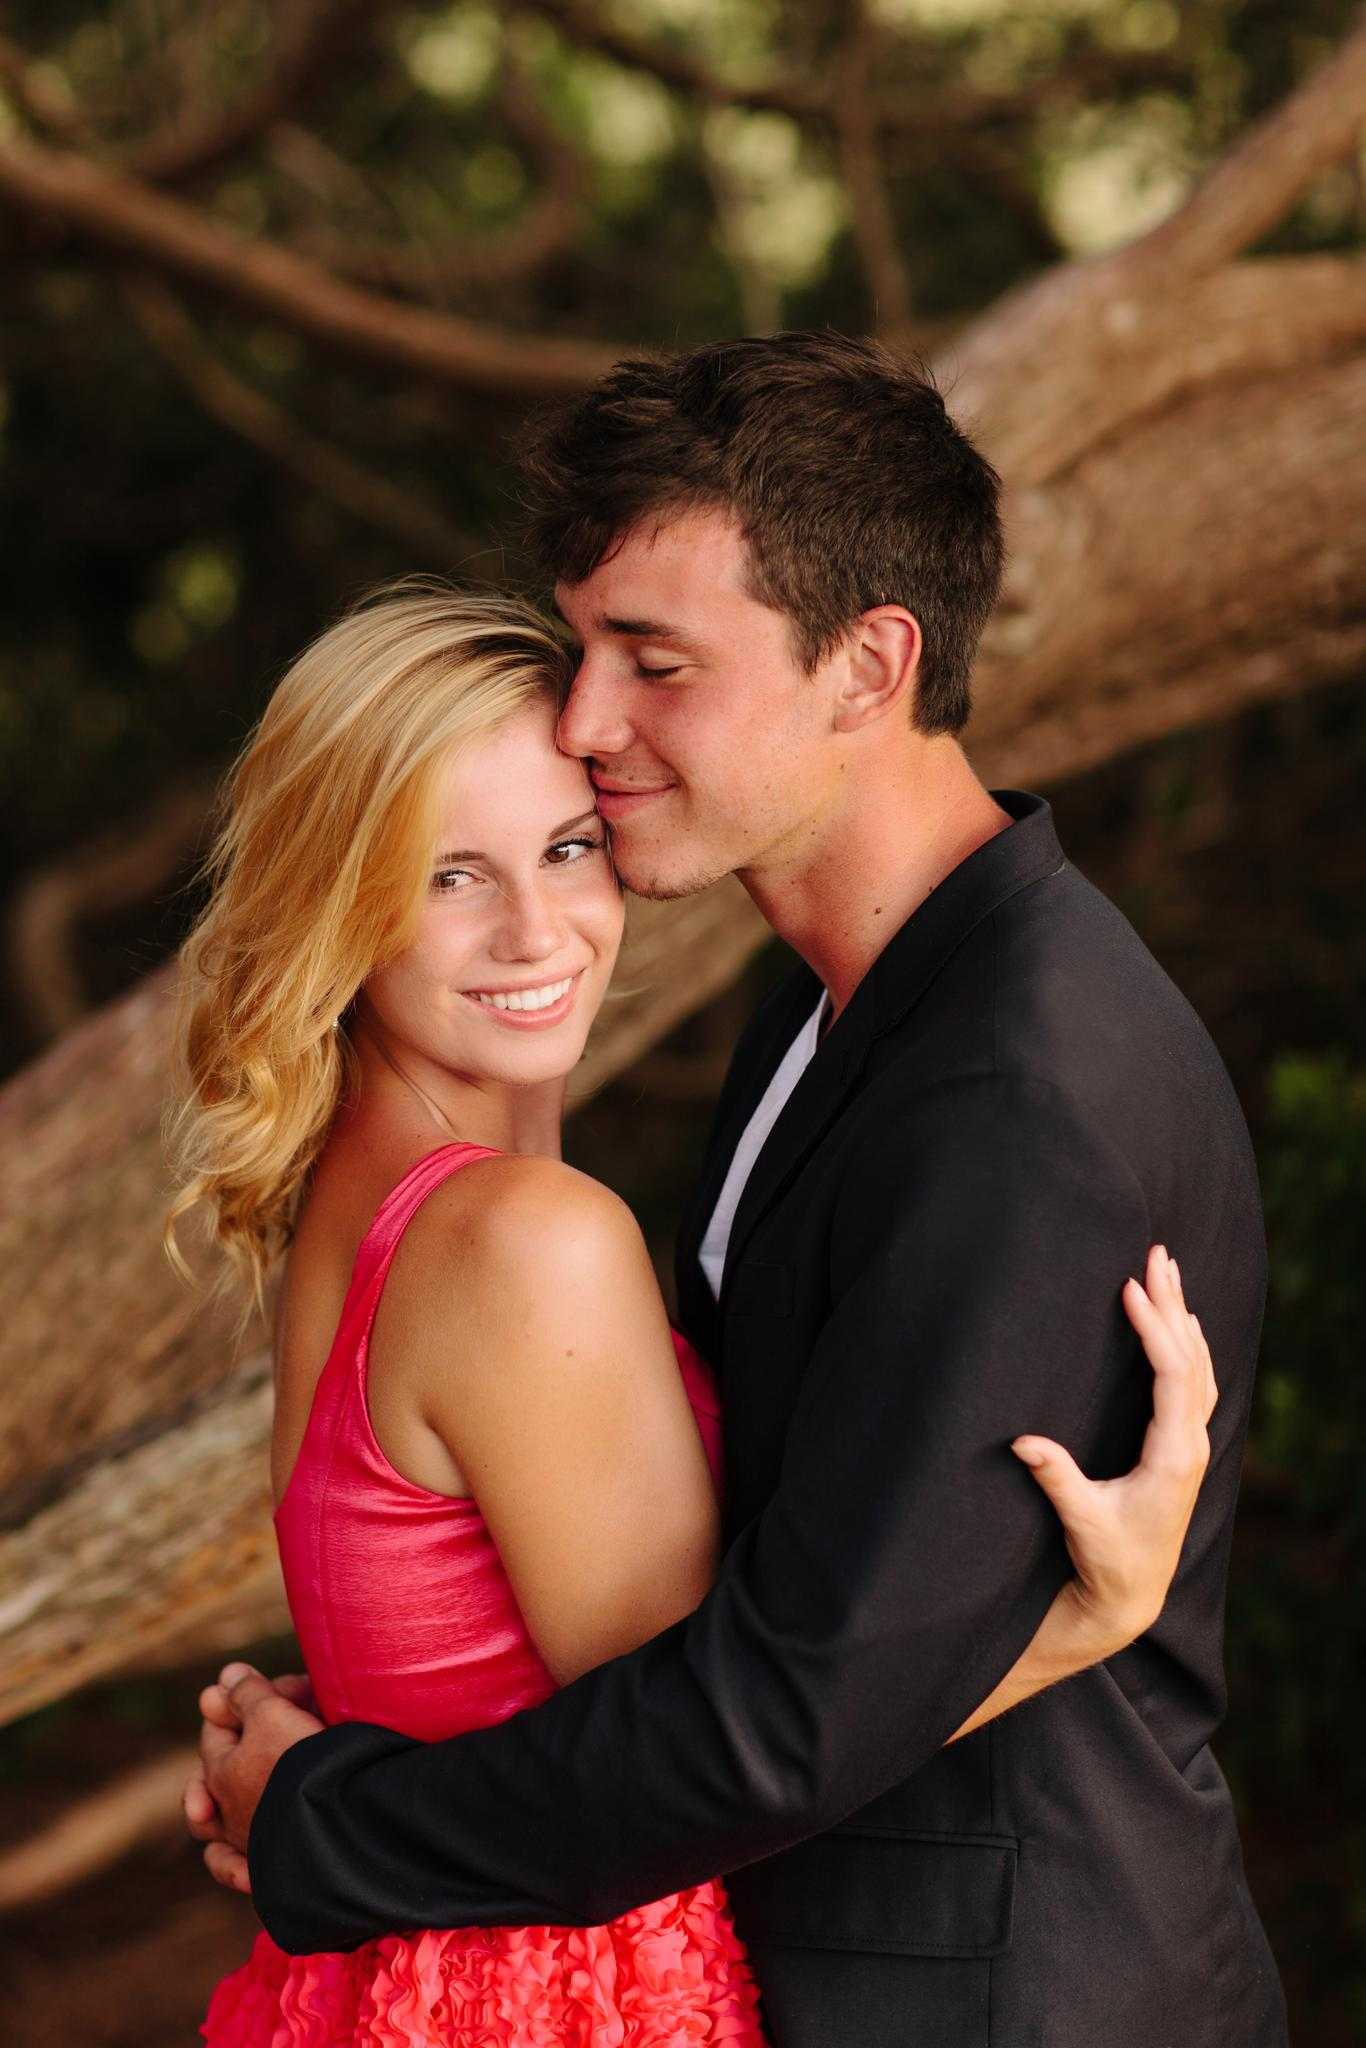 harbor_island_engagement_8252.jpg